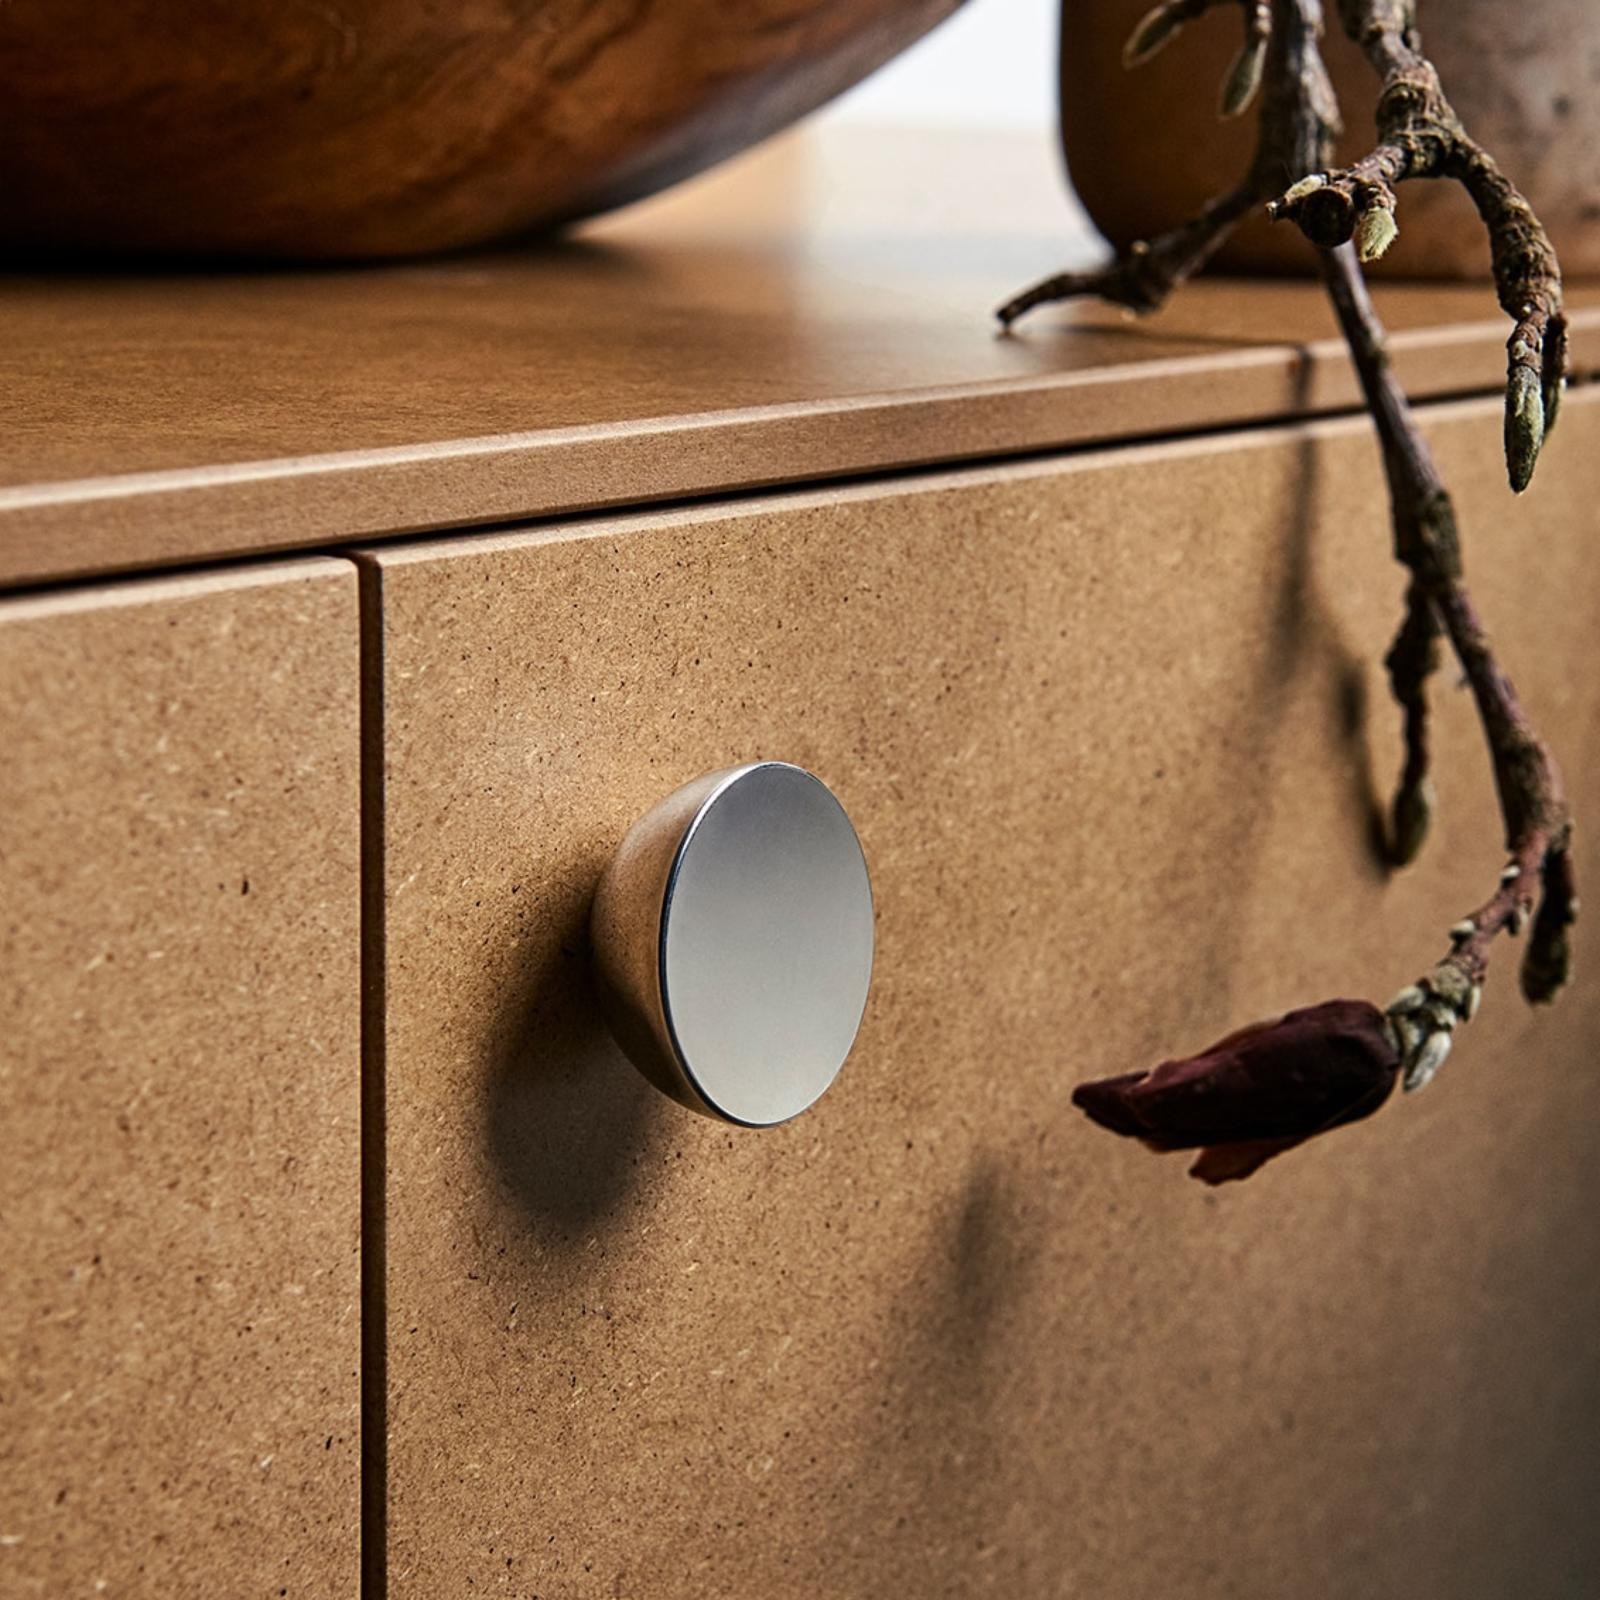 Hemisphere shaped knob in shiny metal, on cabinet fronts in clear-coated mdf